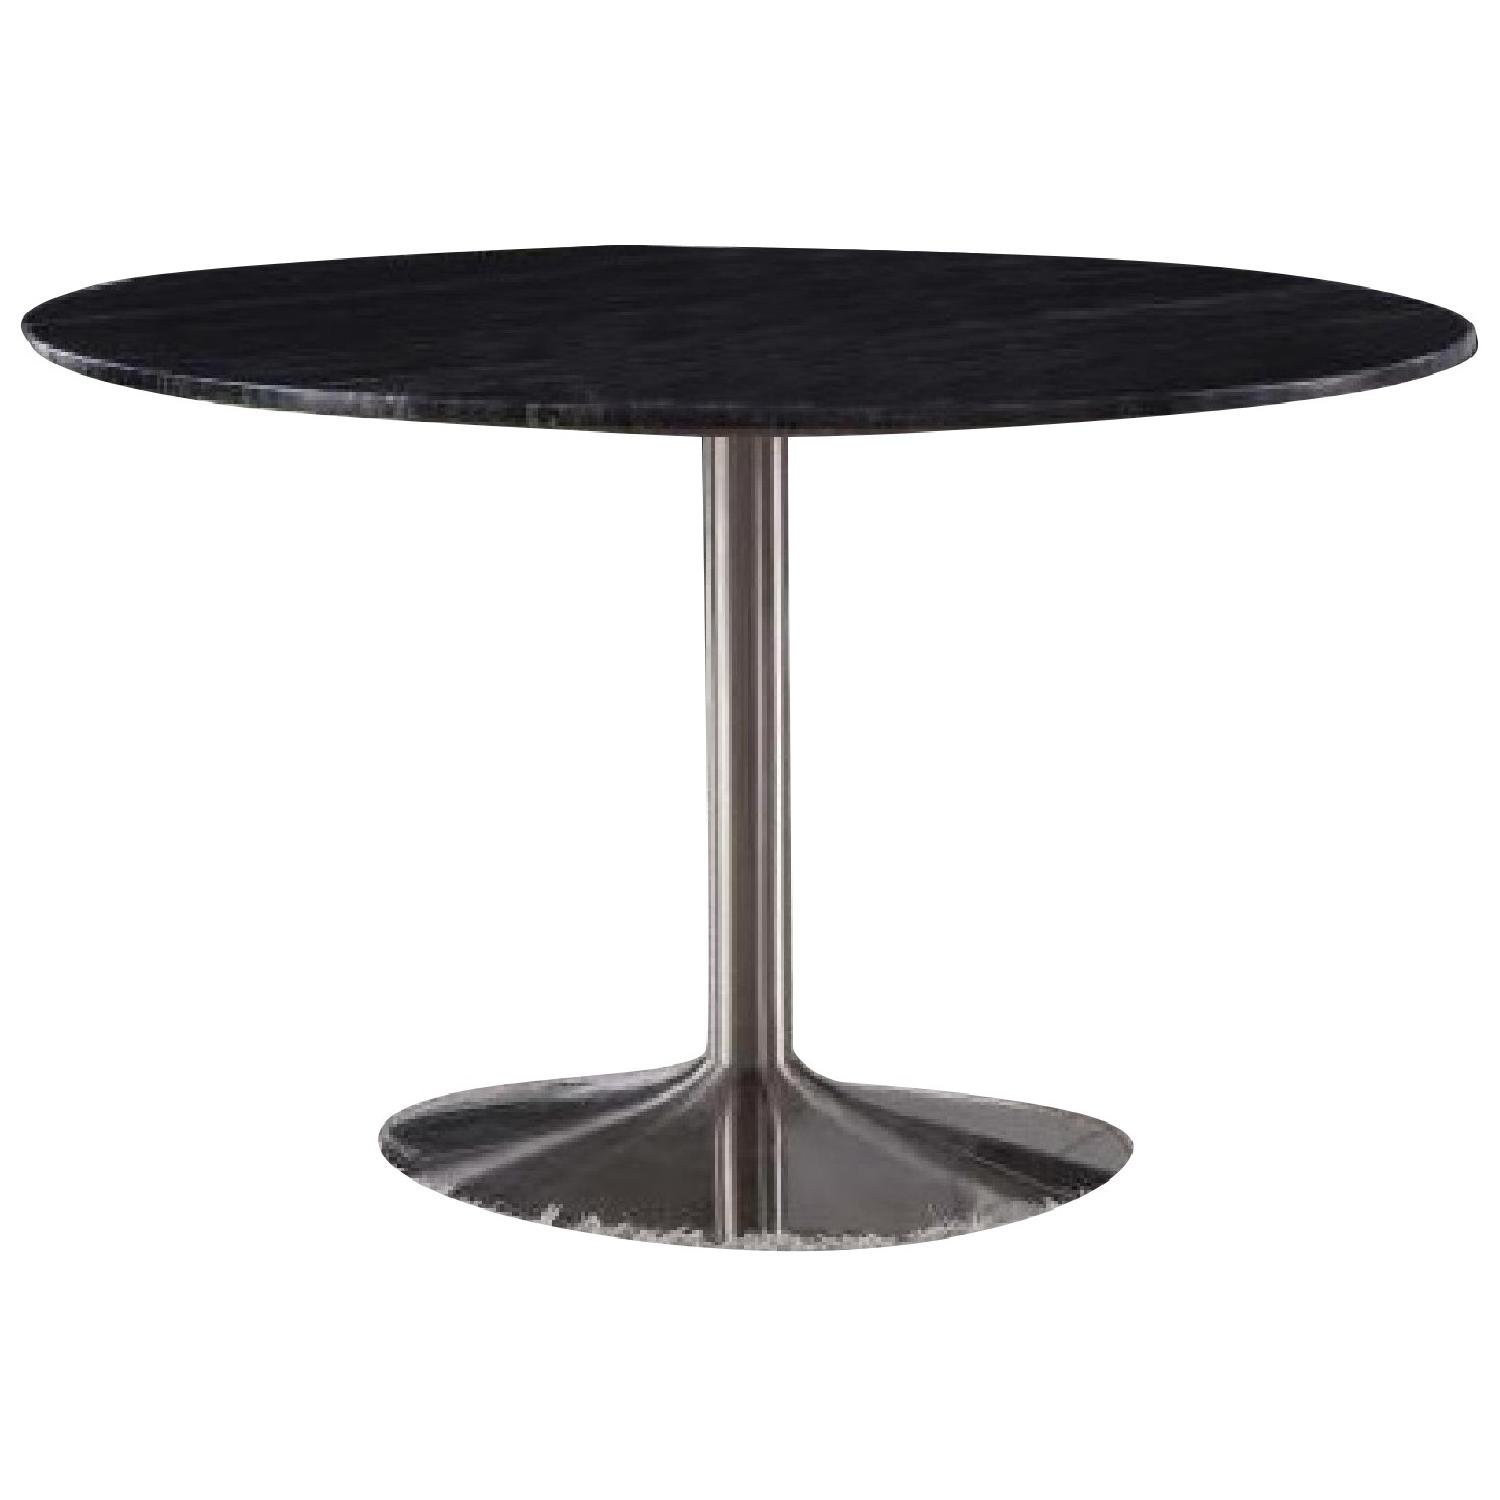 Modern Dining Table w/ Black Marble Top & Nickel Base